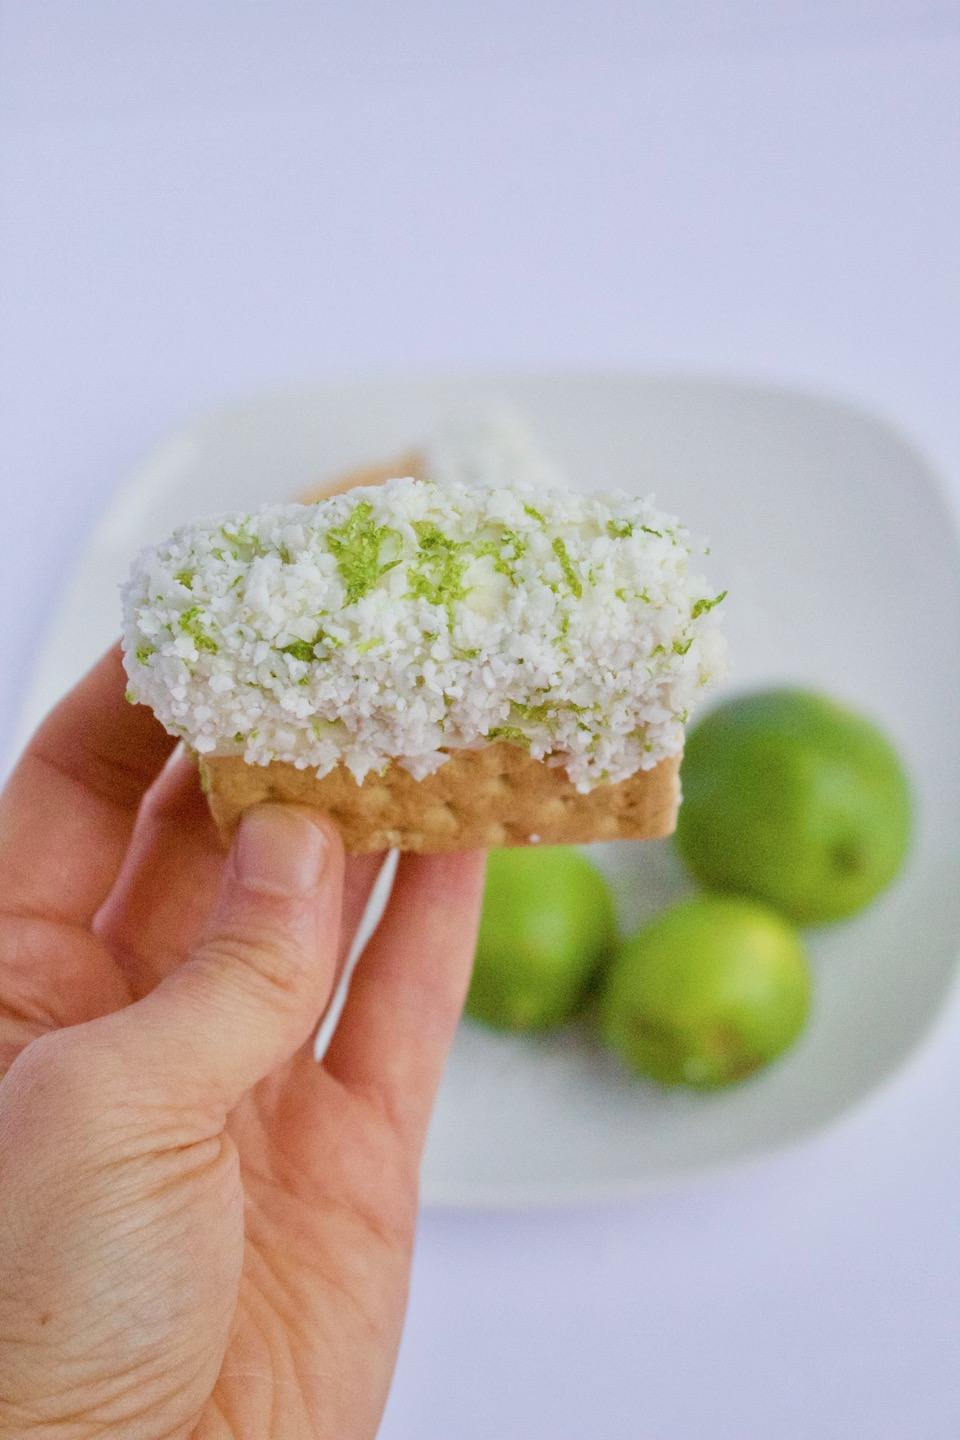 Homemade Key Lime Pie Ice Cream Sandwiches -- A sweet and creamy dessert recipe made with simple ingredients and no added sugar! | Vegetarian | Dairy-Free | @sinfulnutrition